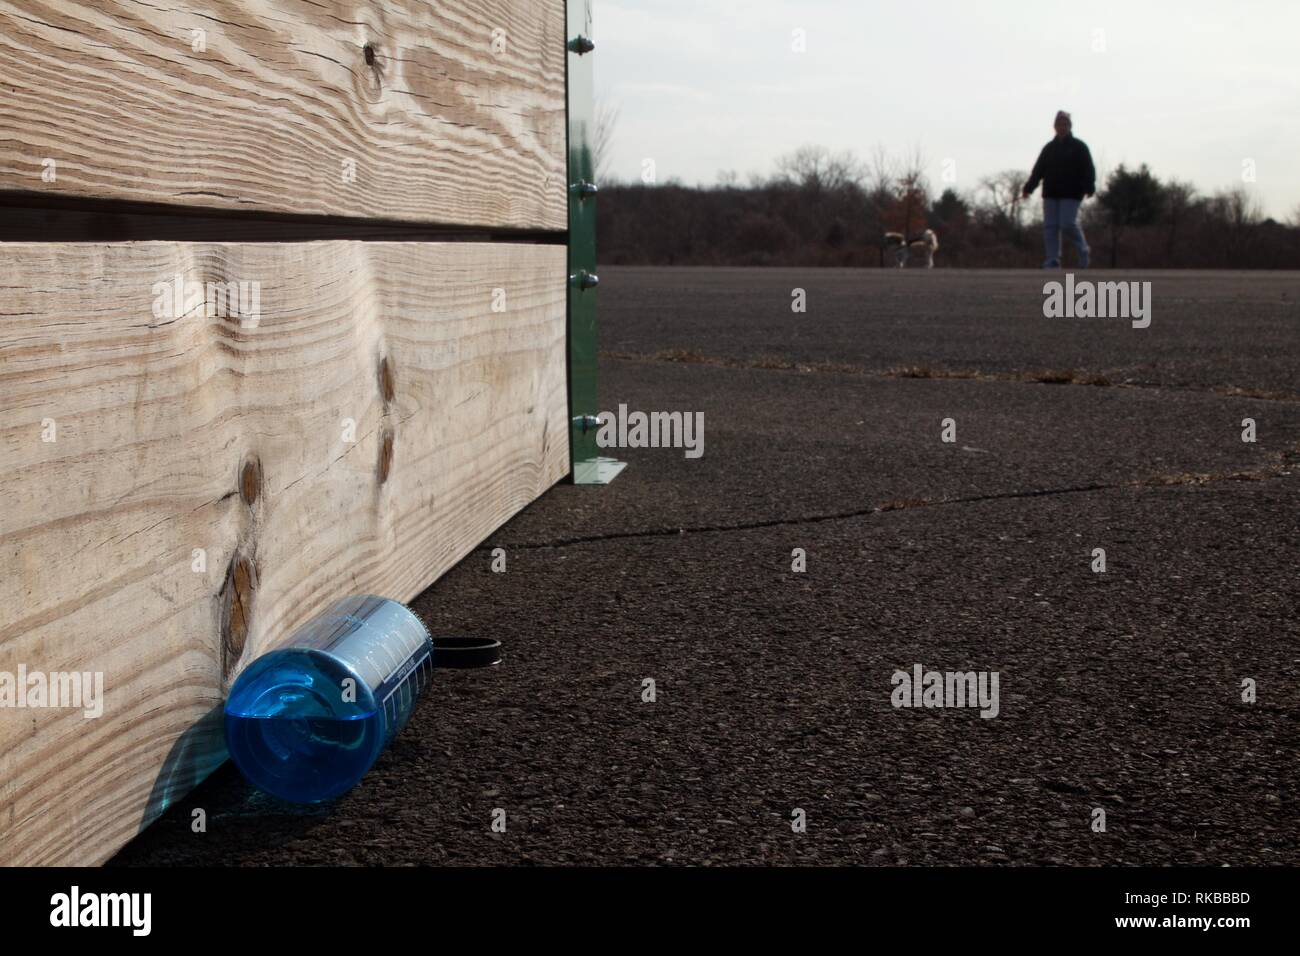 Warminster, Pennsylvania, USA - February 6, 2019: Discarded water bottle at a community park occupying the site of a former naval air base. - Stock Image